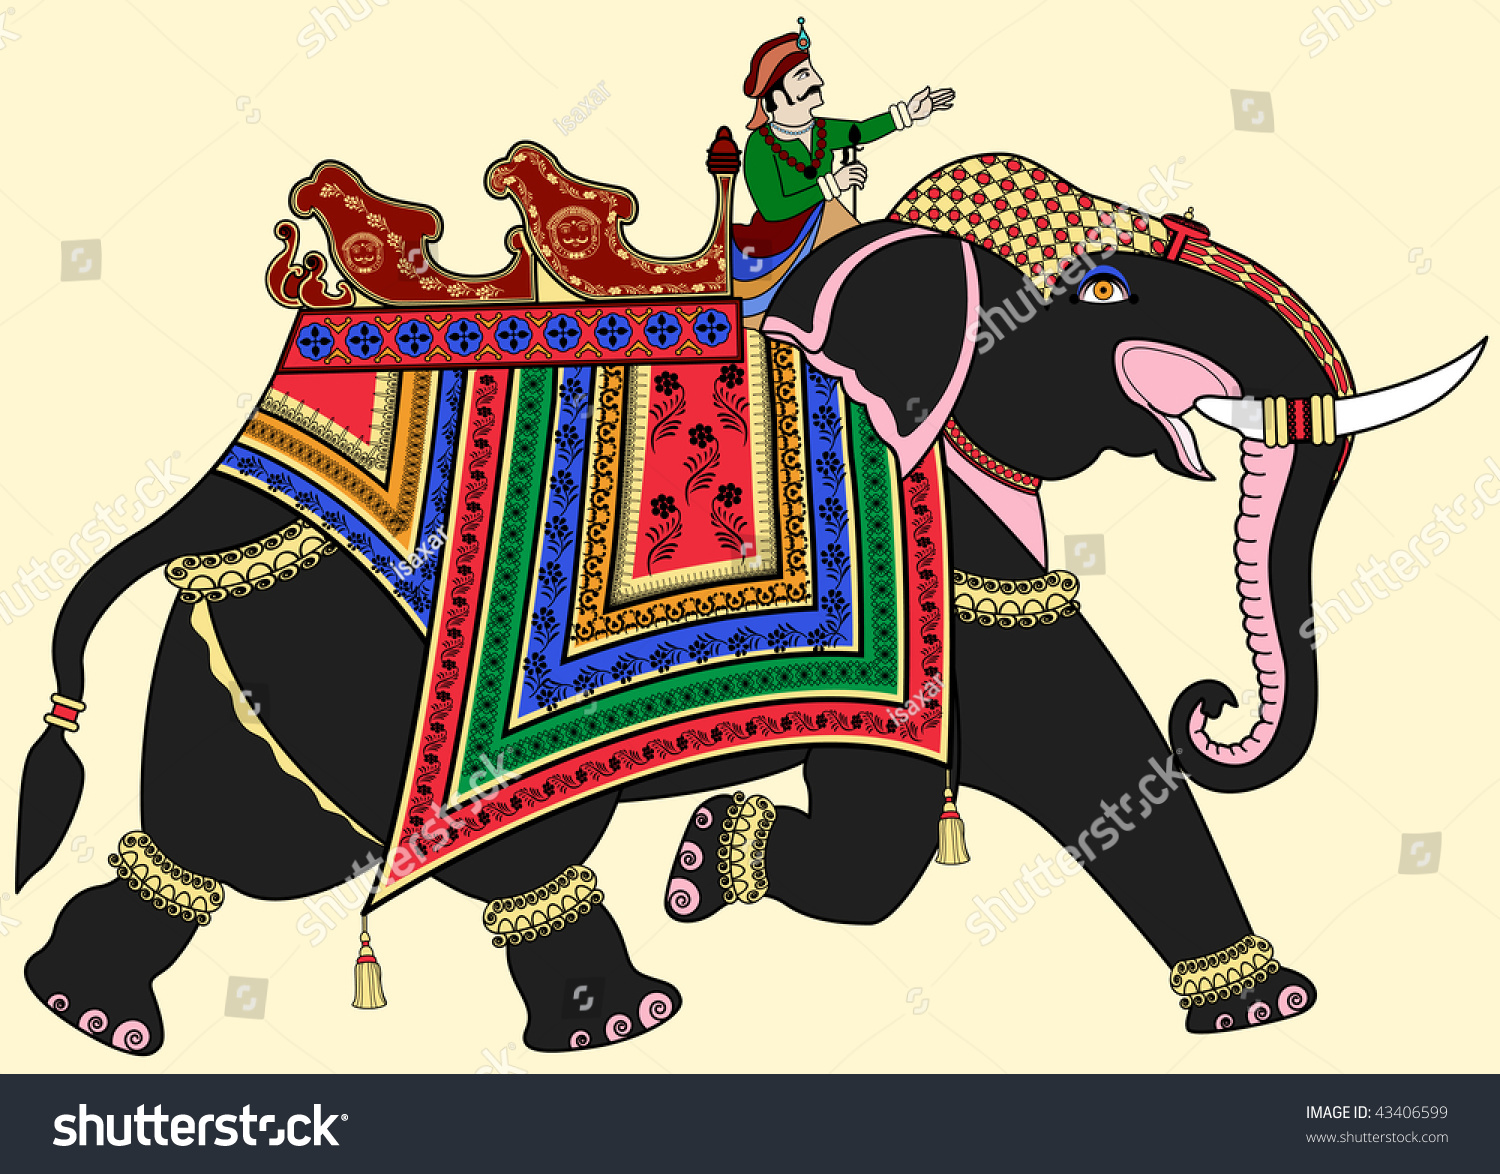 Vector Illustration Decorated Indian Elephant Stock Vector ...